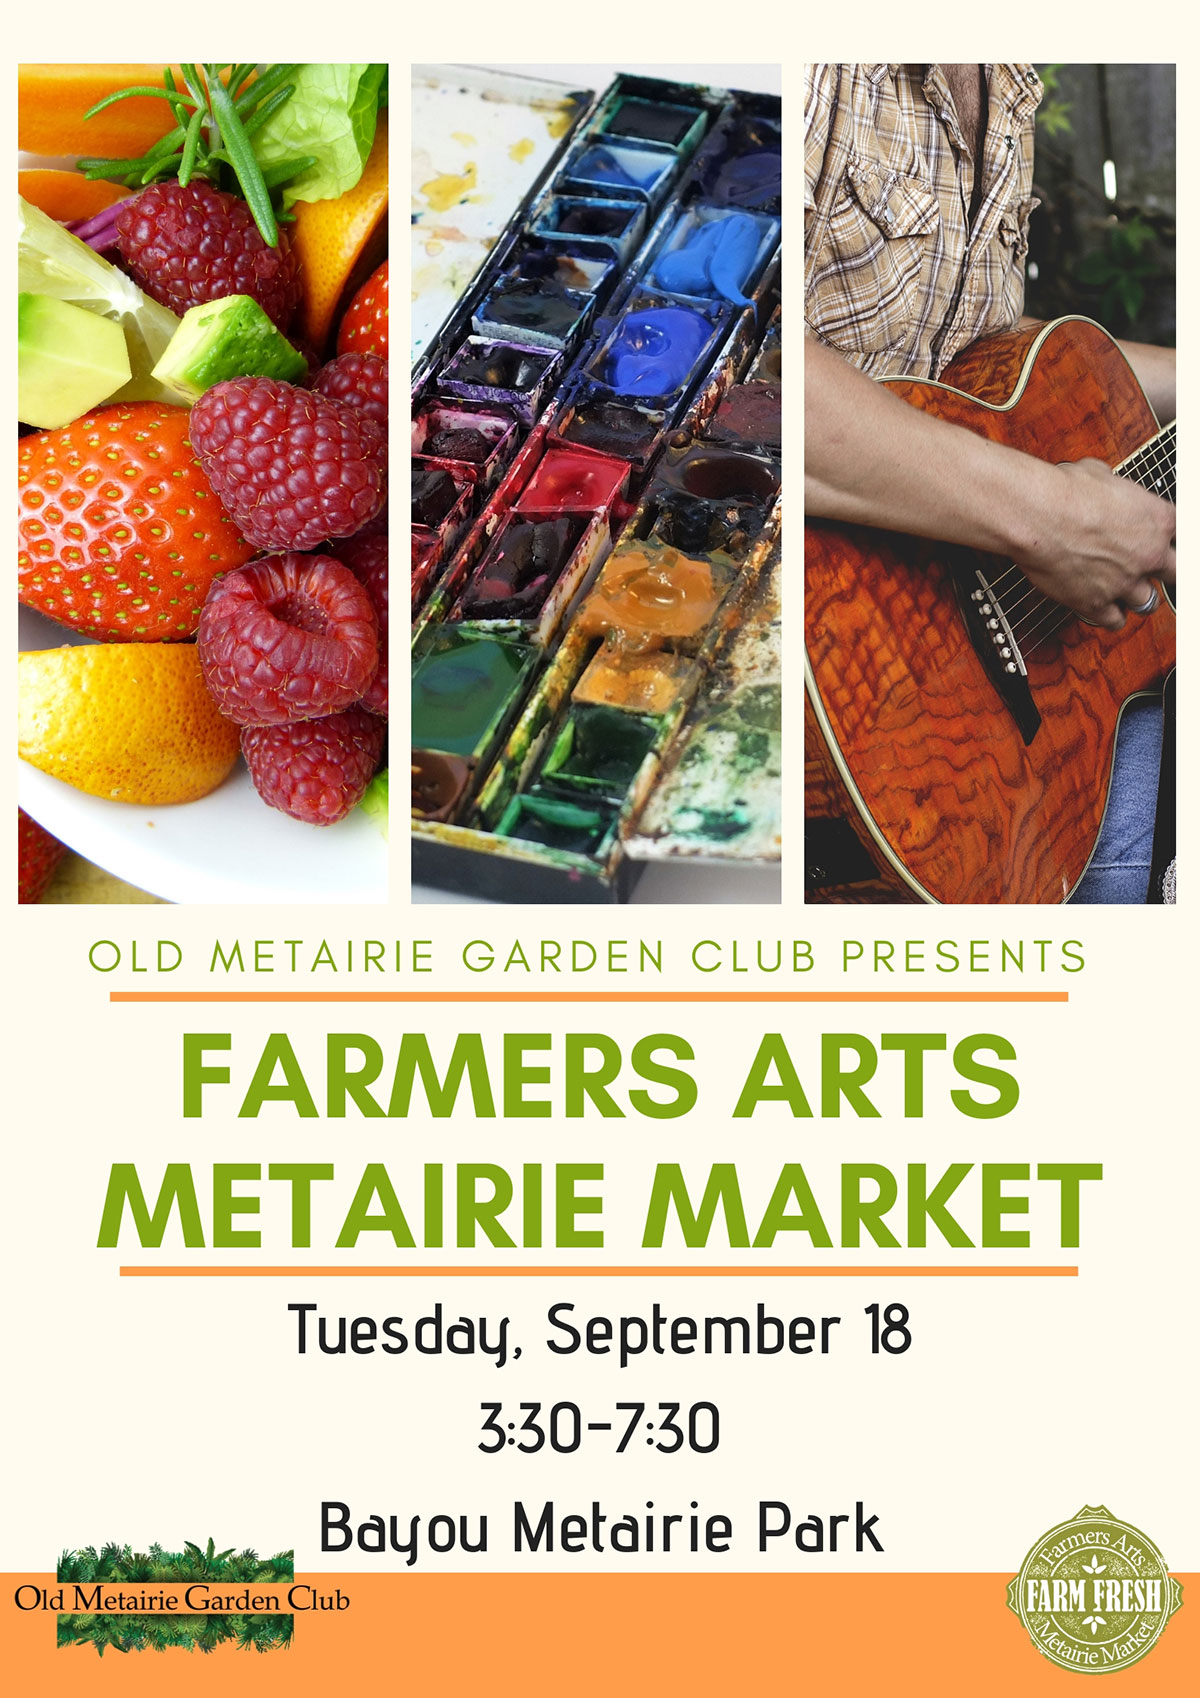 Farmers Arts Metairie Market September 18, 2018 | Old Metairie Garden Club